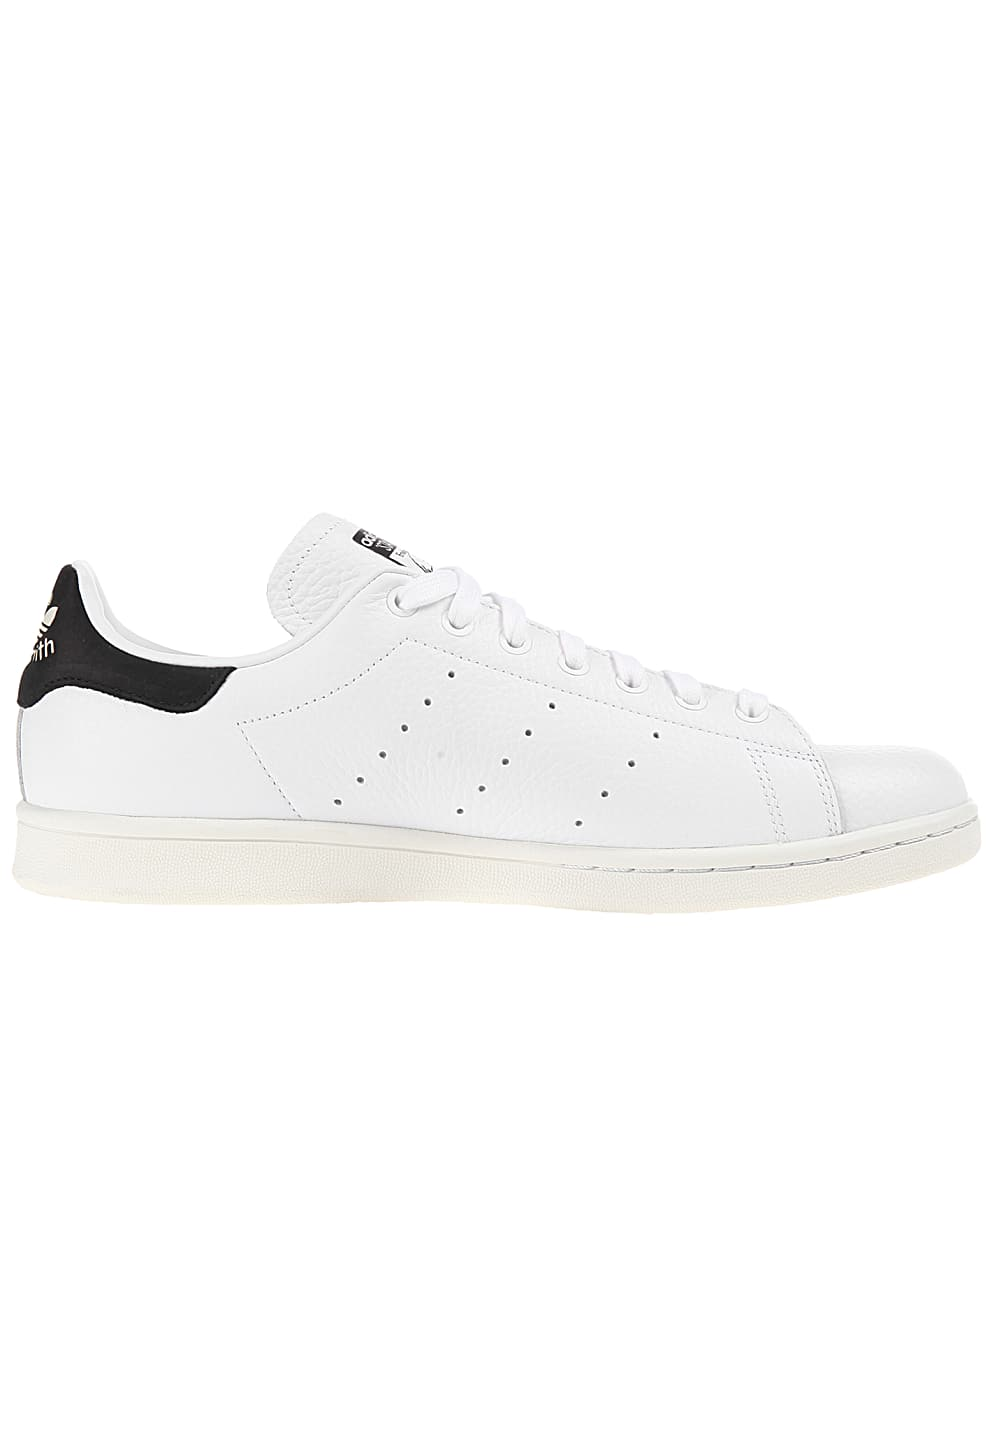 adidas Originals Stan Smith - Sneaker für Herren - Weiß